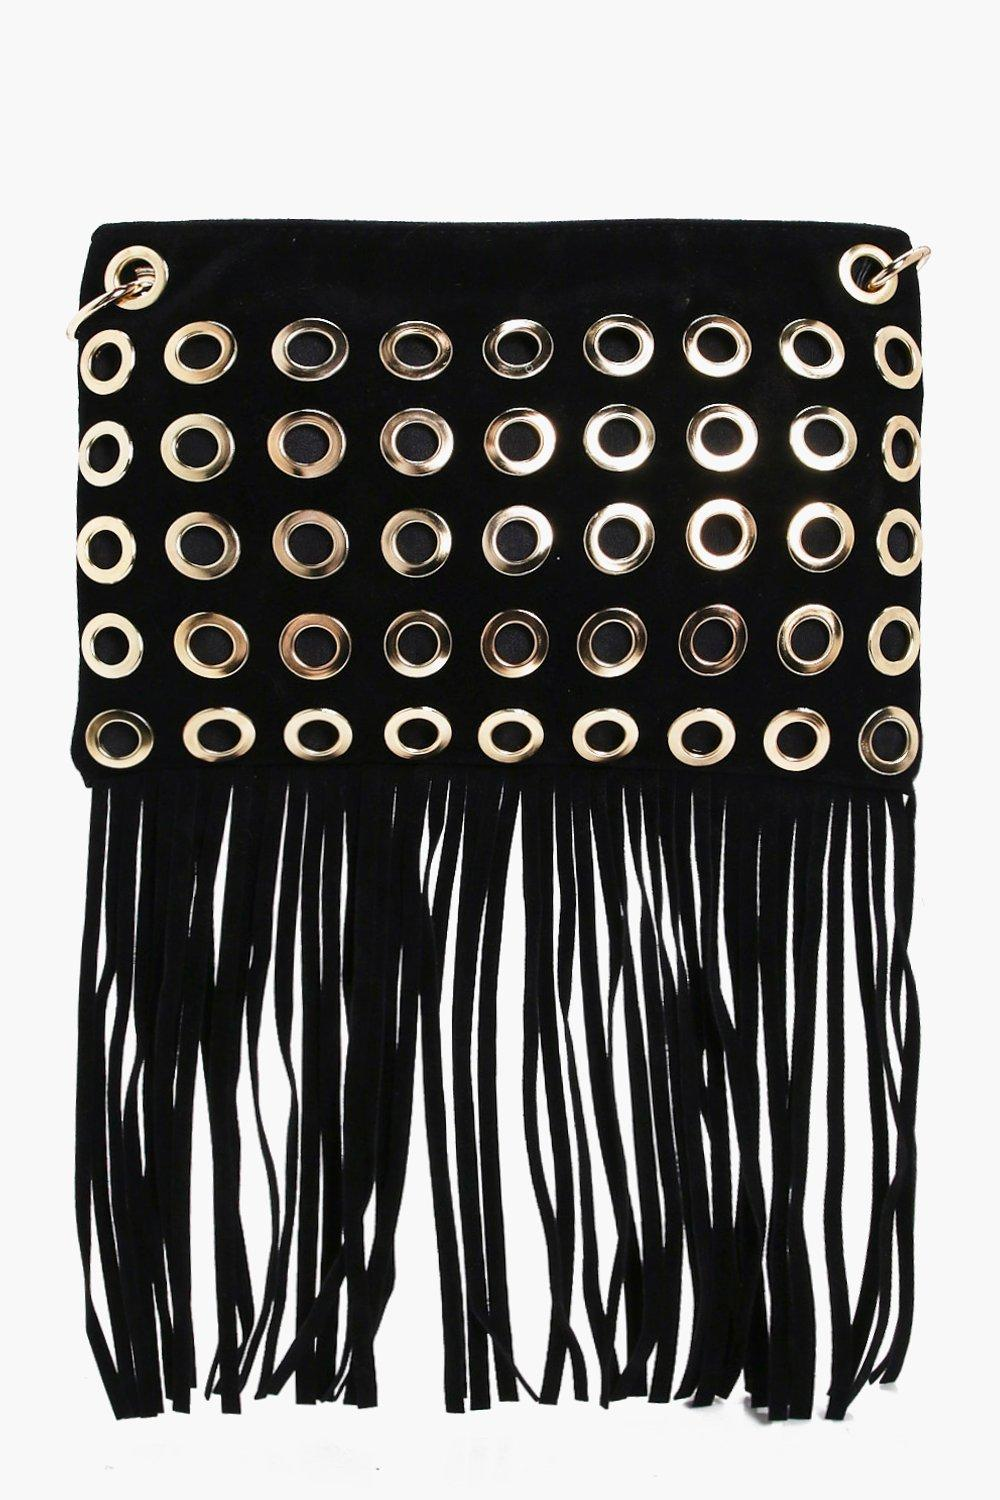 Eyelet Fringed Cross Body Bag - black - Rosie Eyel